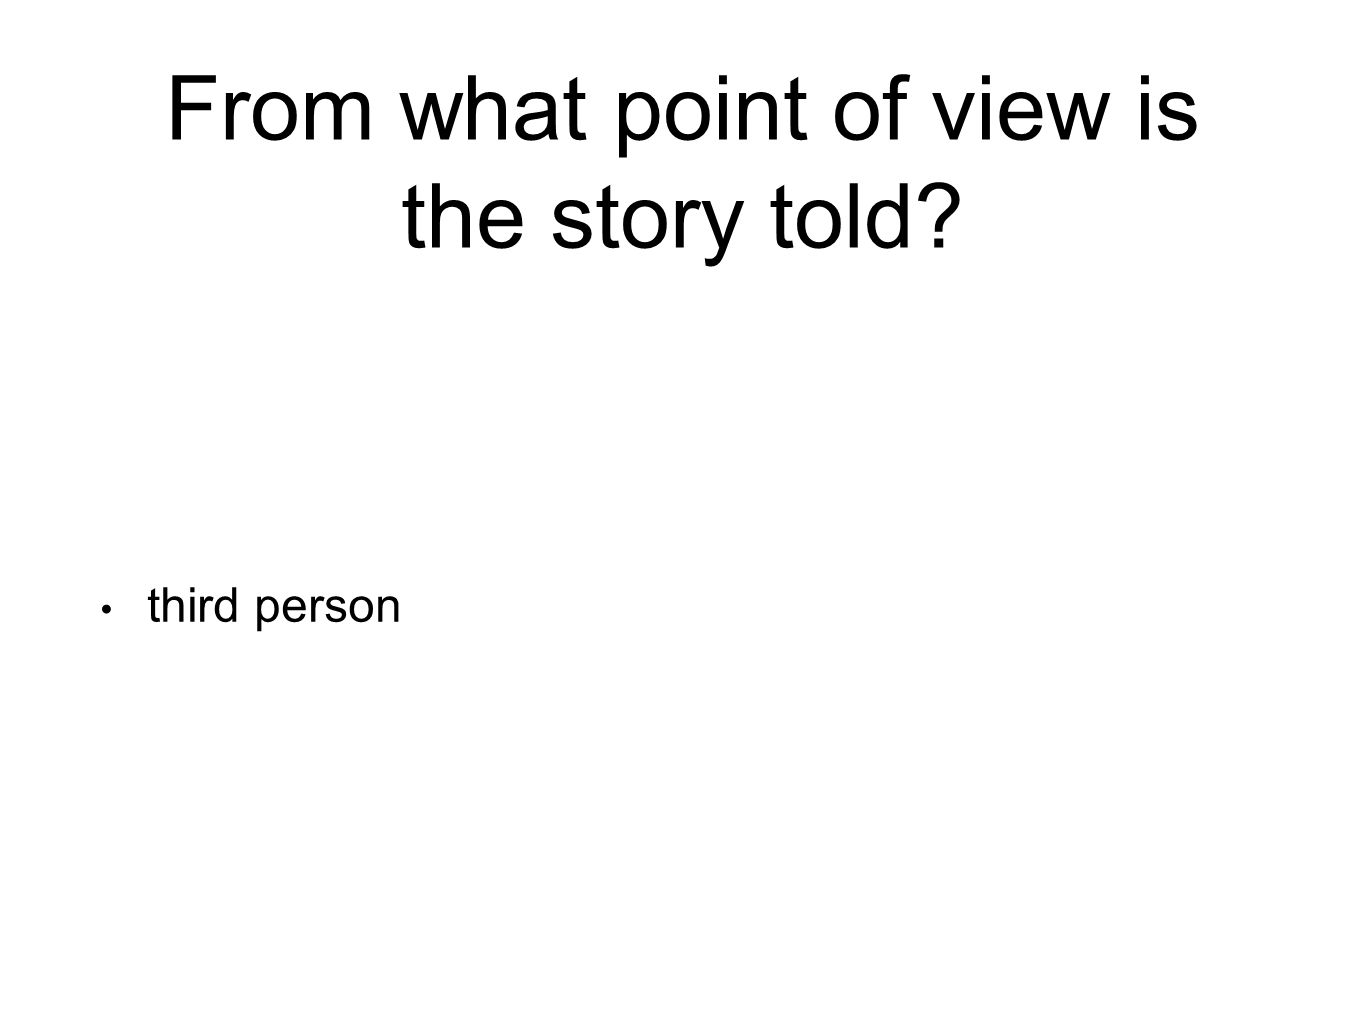 From what point of view is the story told third person